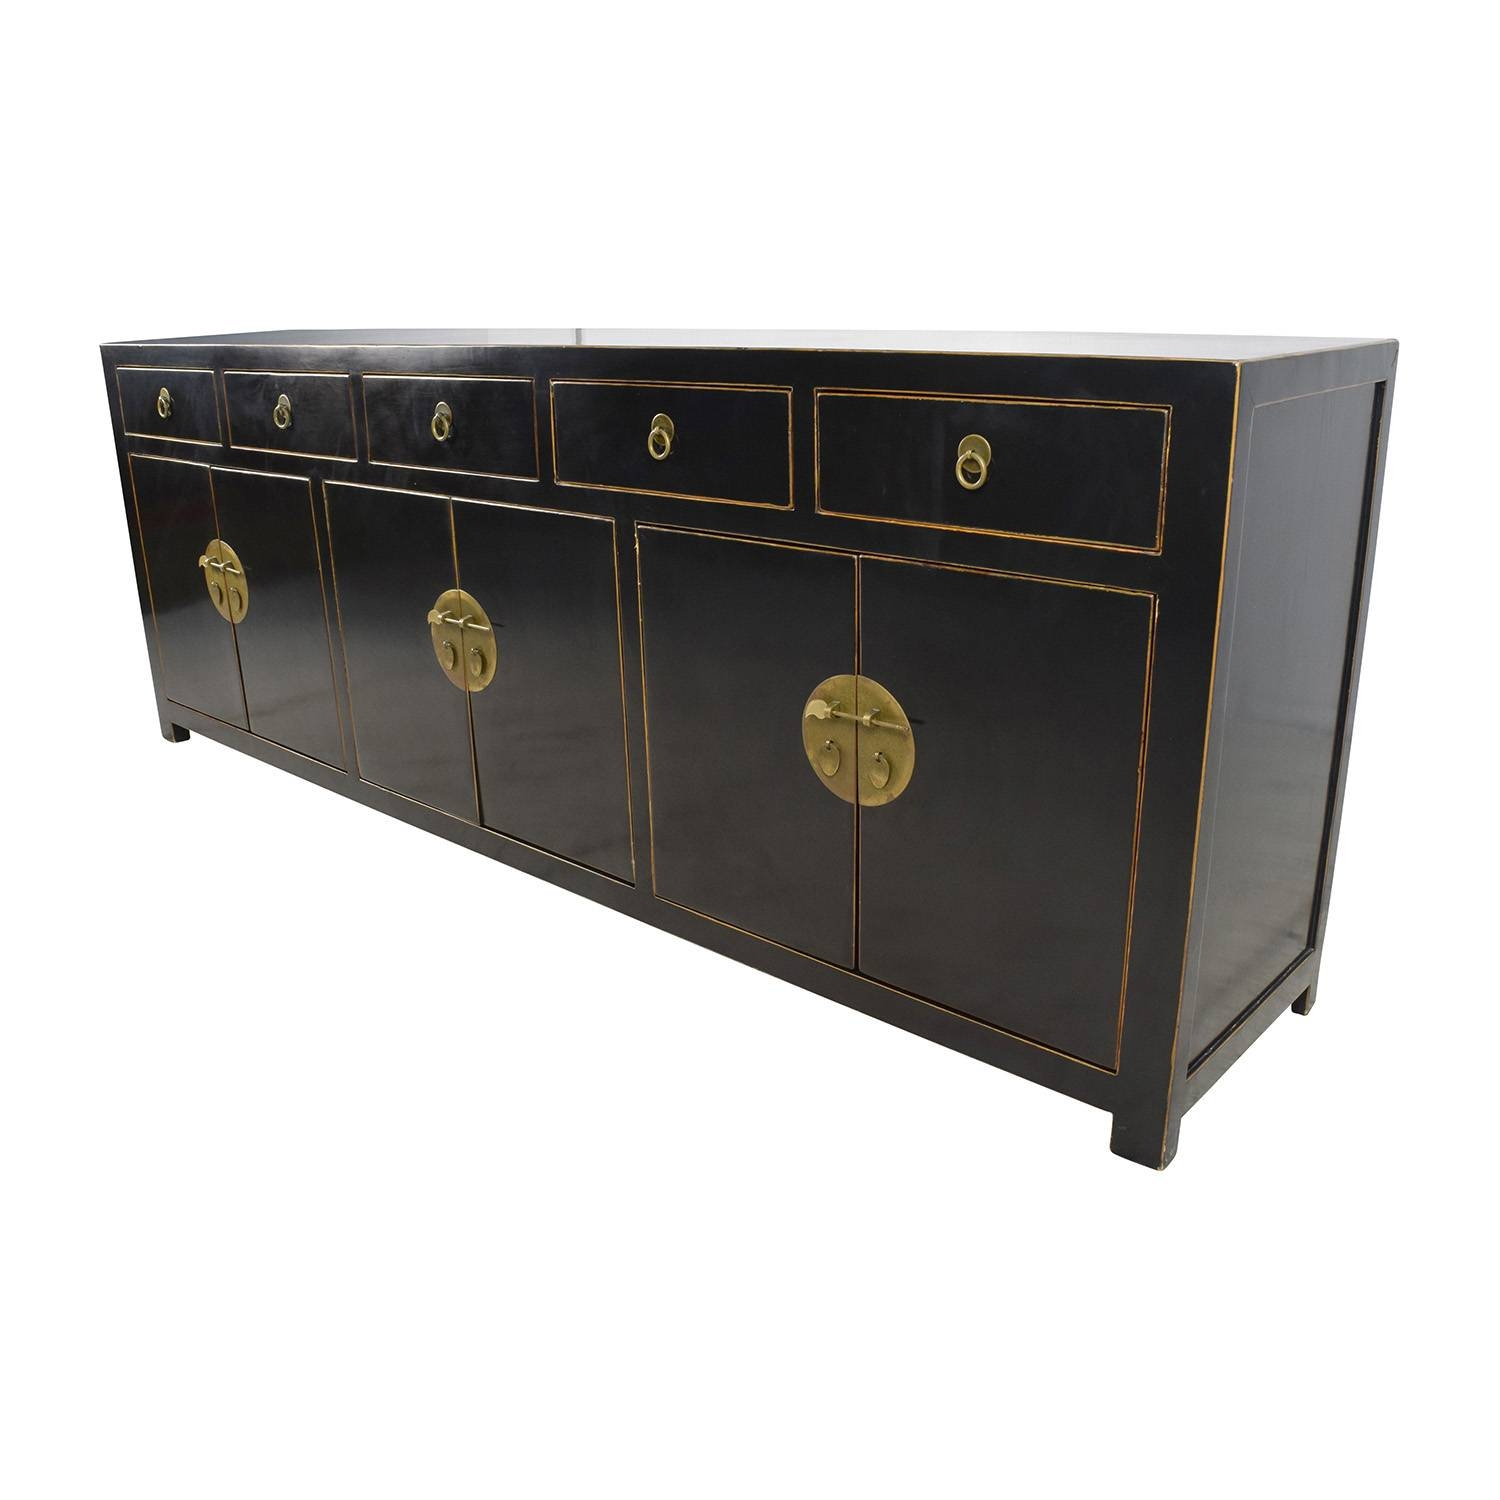 85% Off - Custom Made Black Drawer And Cabinet Sideboard / Storage in Ready Made Sideboards (Image 5 of 30)